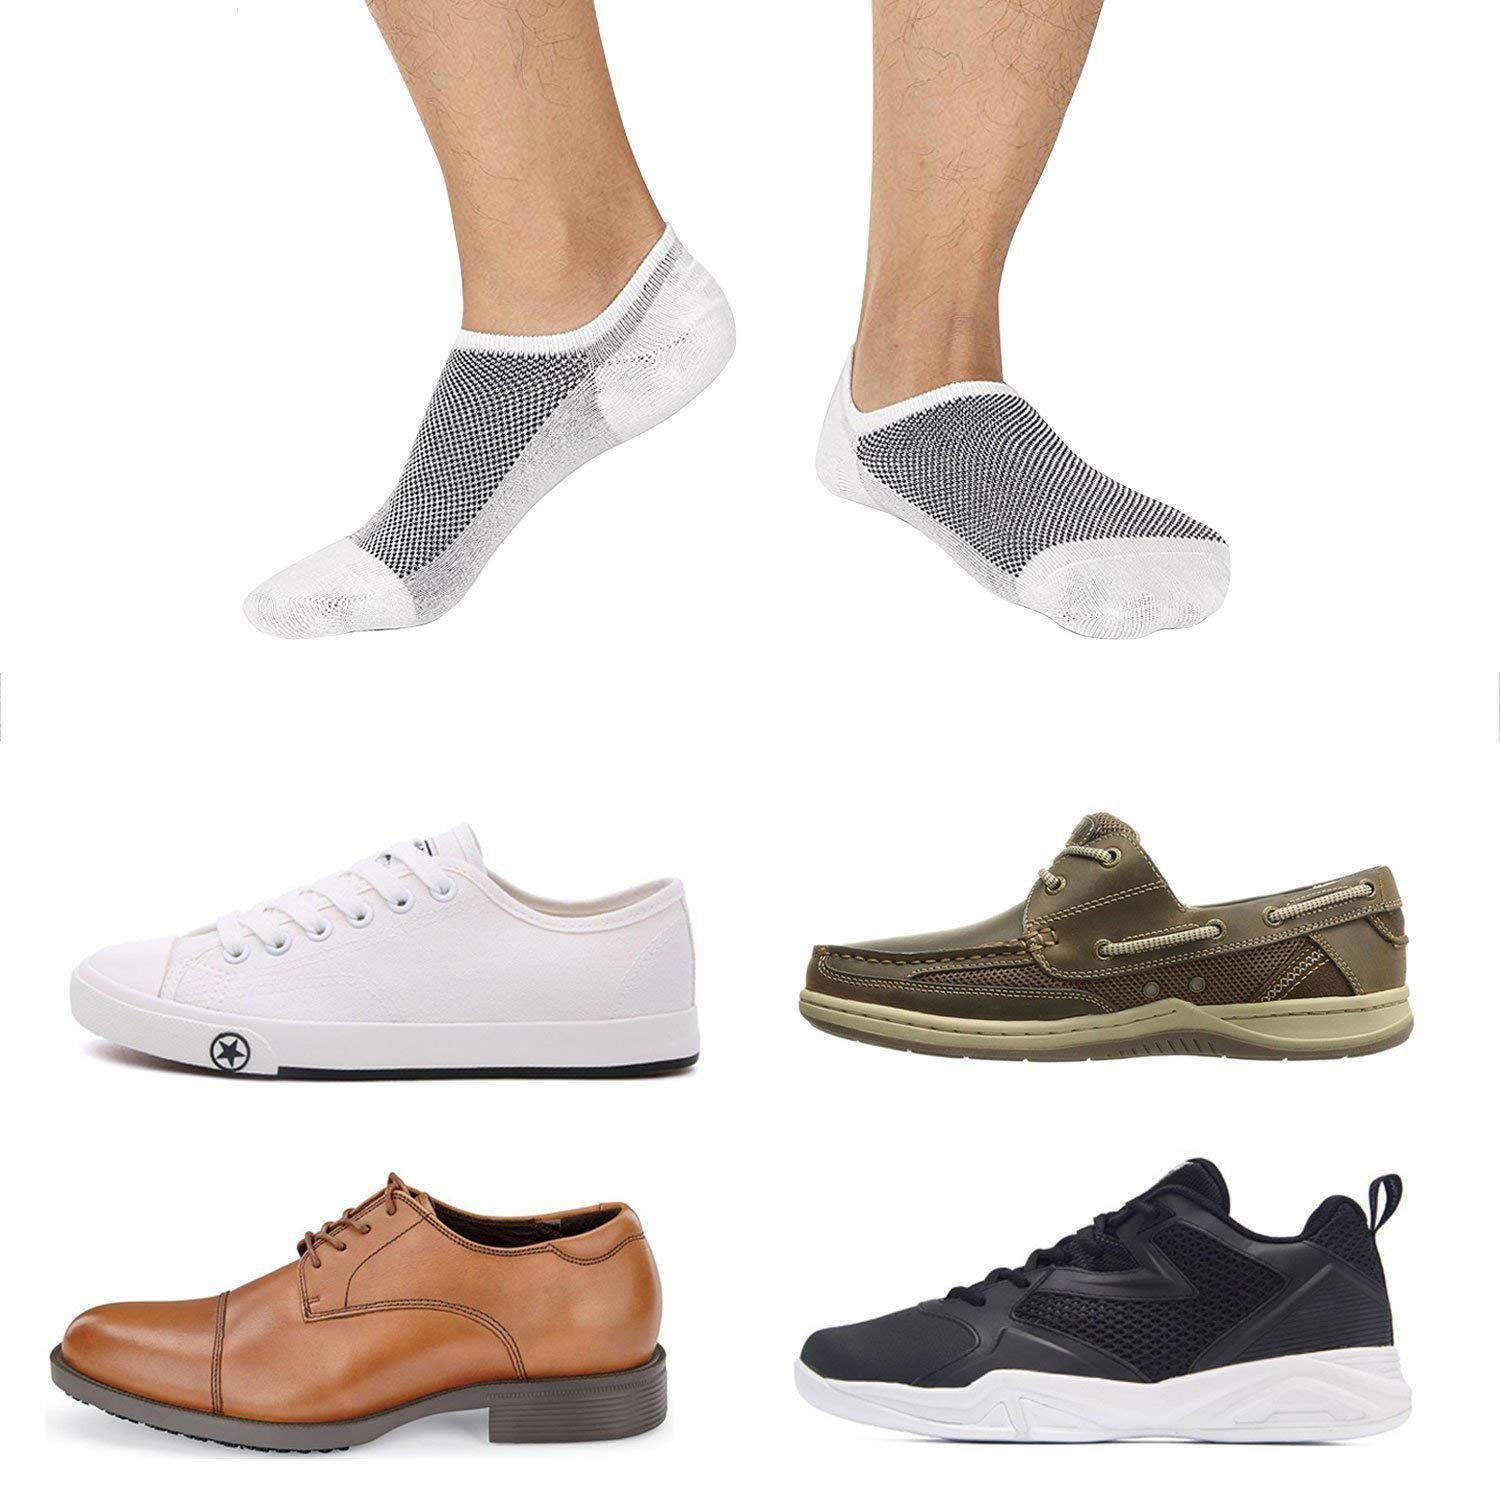 SIXDAYSOX Cotton No Show Socks for Men & Women 8 Pairs Invisible Low Cut with Non Slip Sports Ankle Socks for Trainers, Size 6-11 (8 Pairs Mix2, US Size 6-11/ EU Size 37-46)